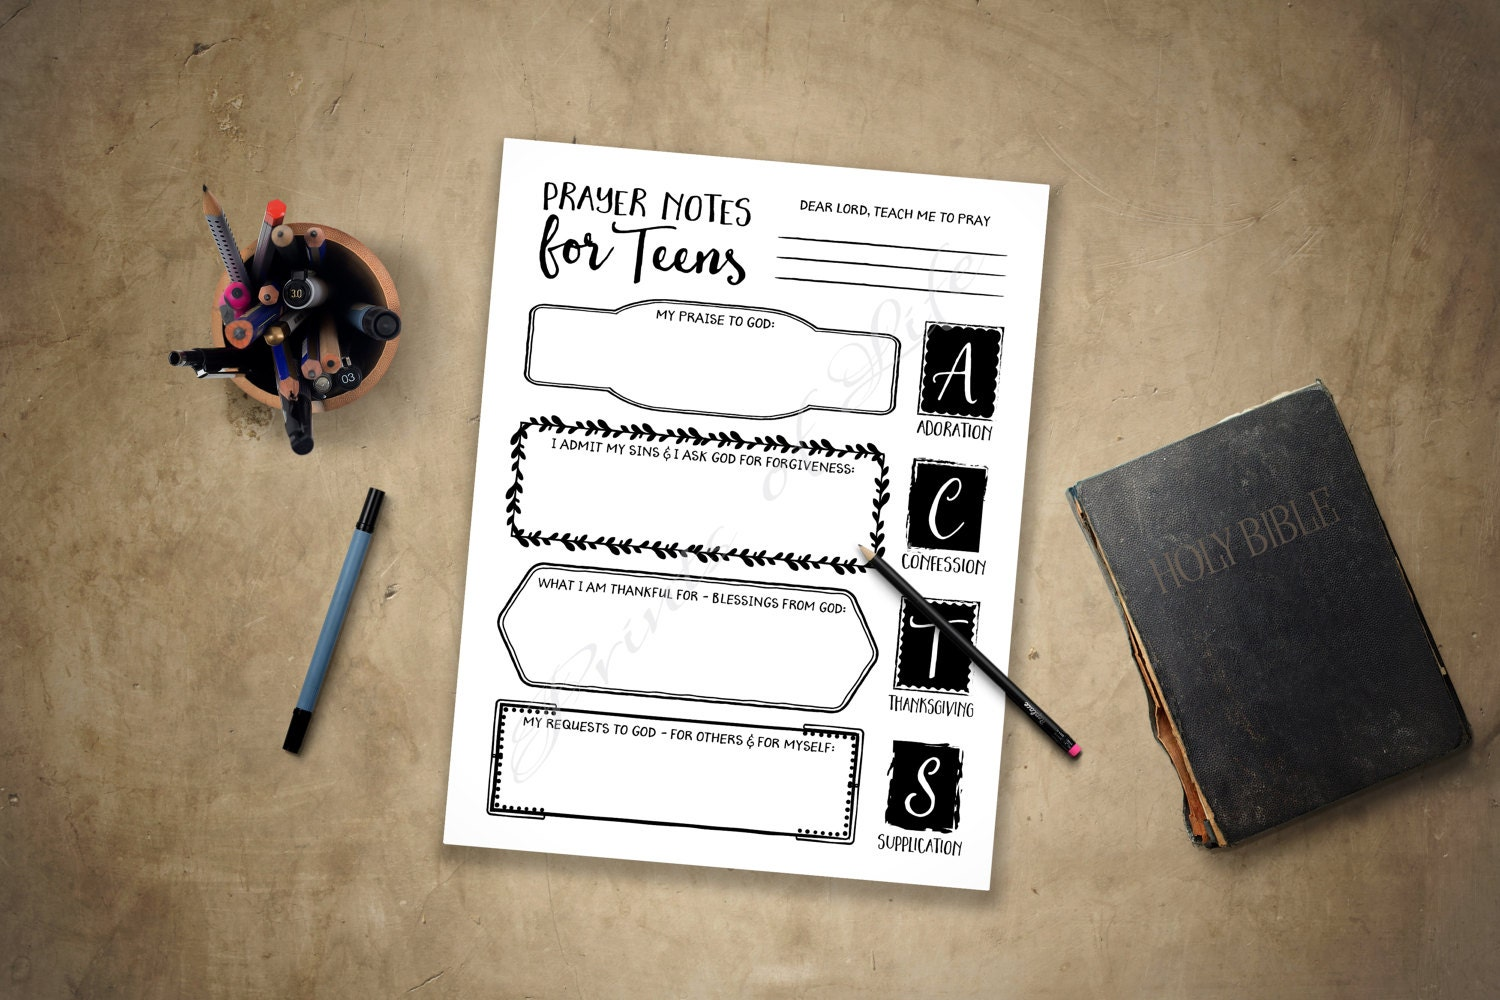 Prayer Notes For Teens Pdf Printable Instant Download Acts-5273